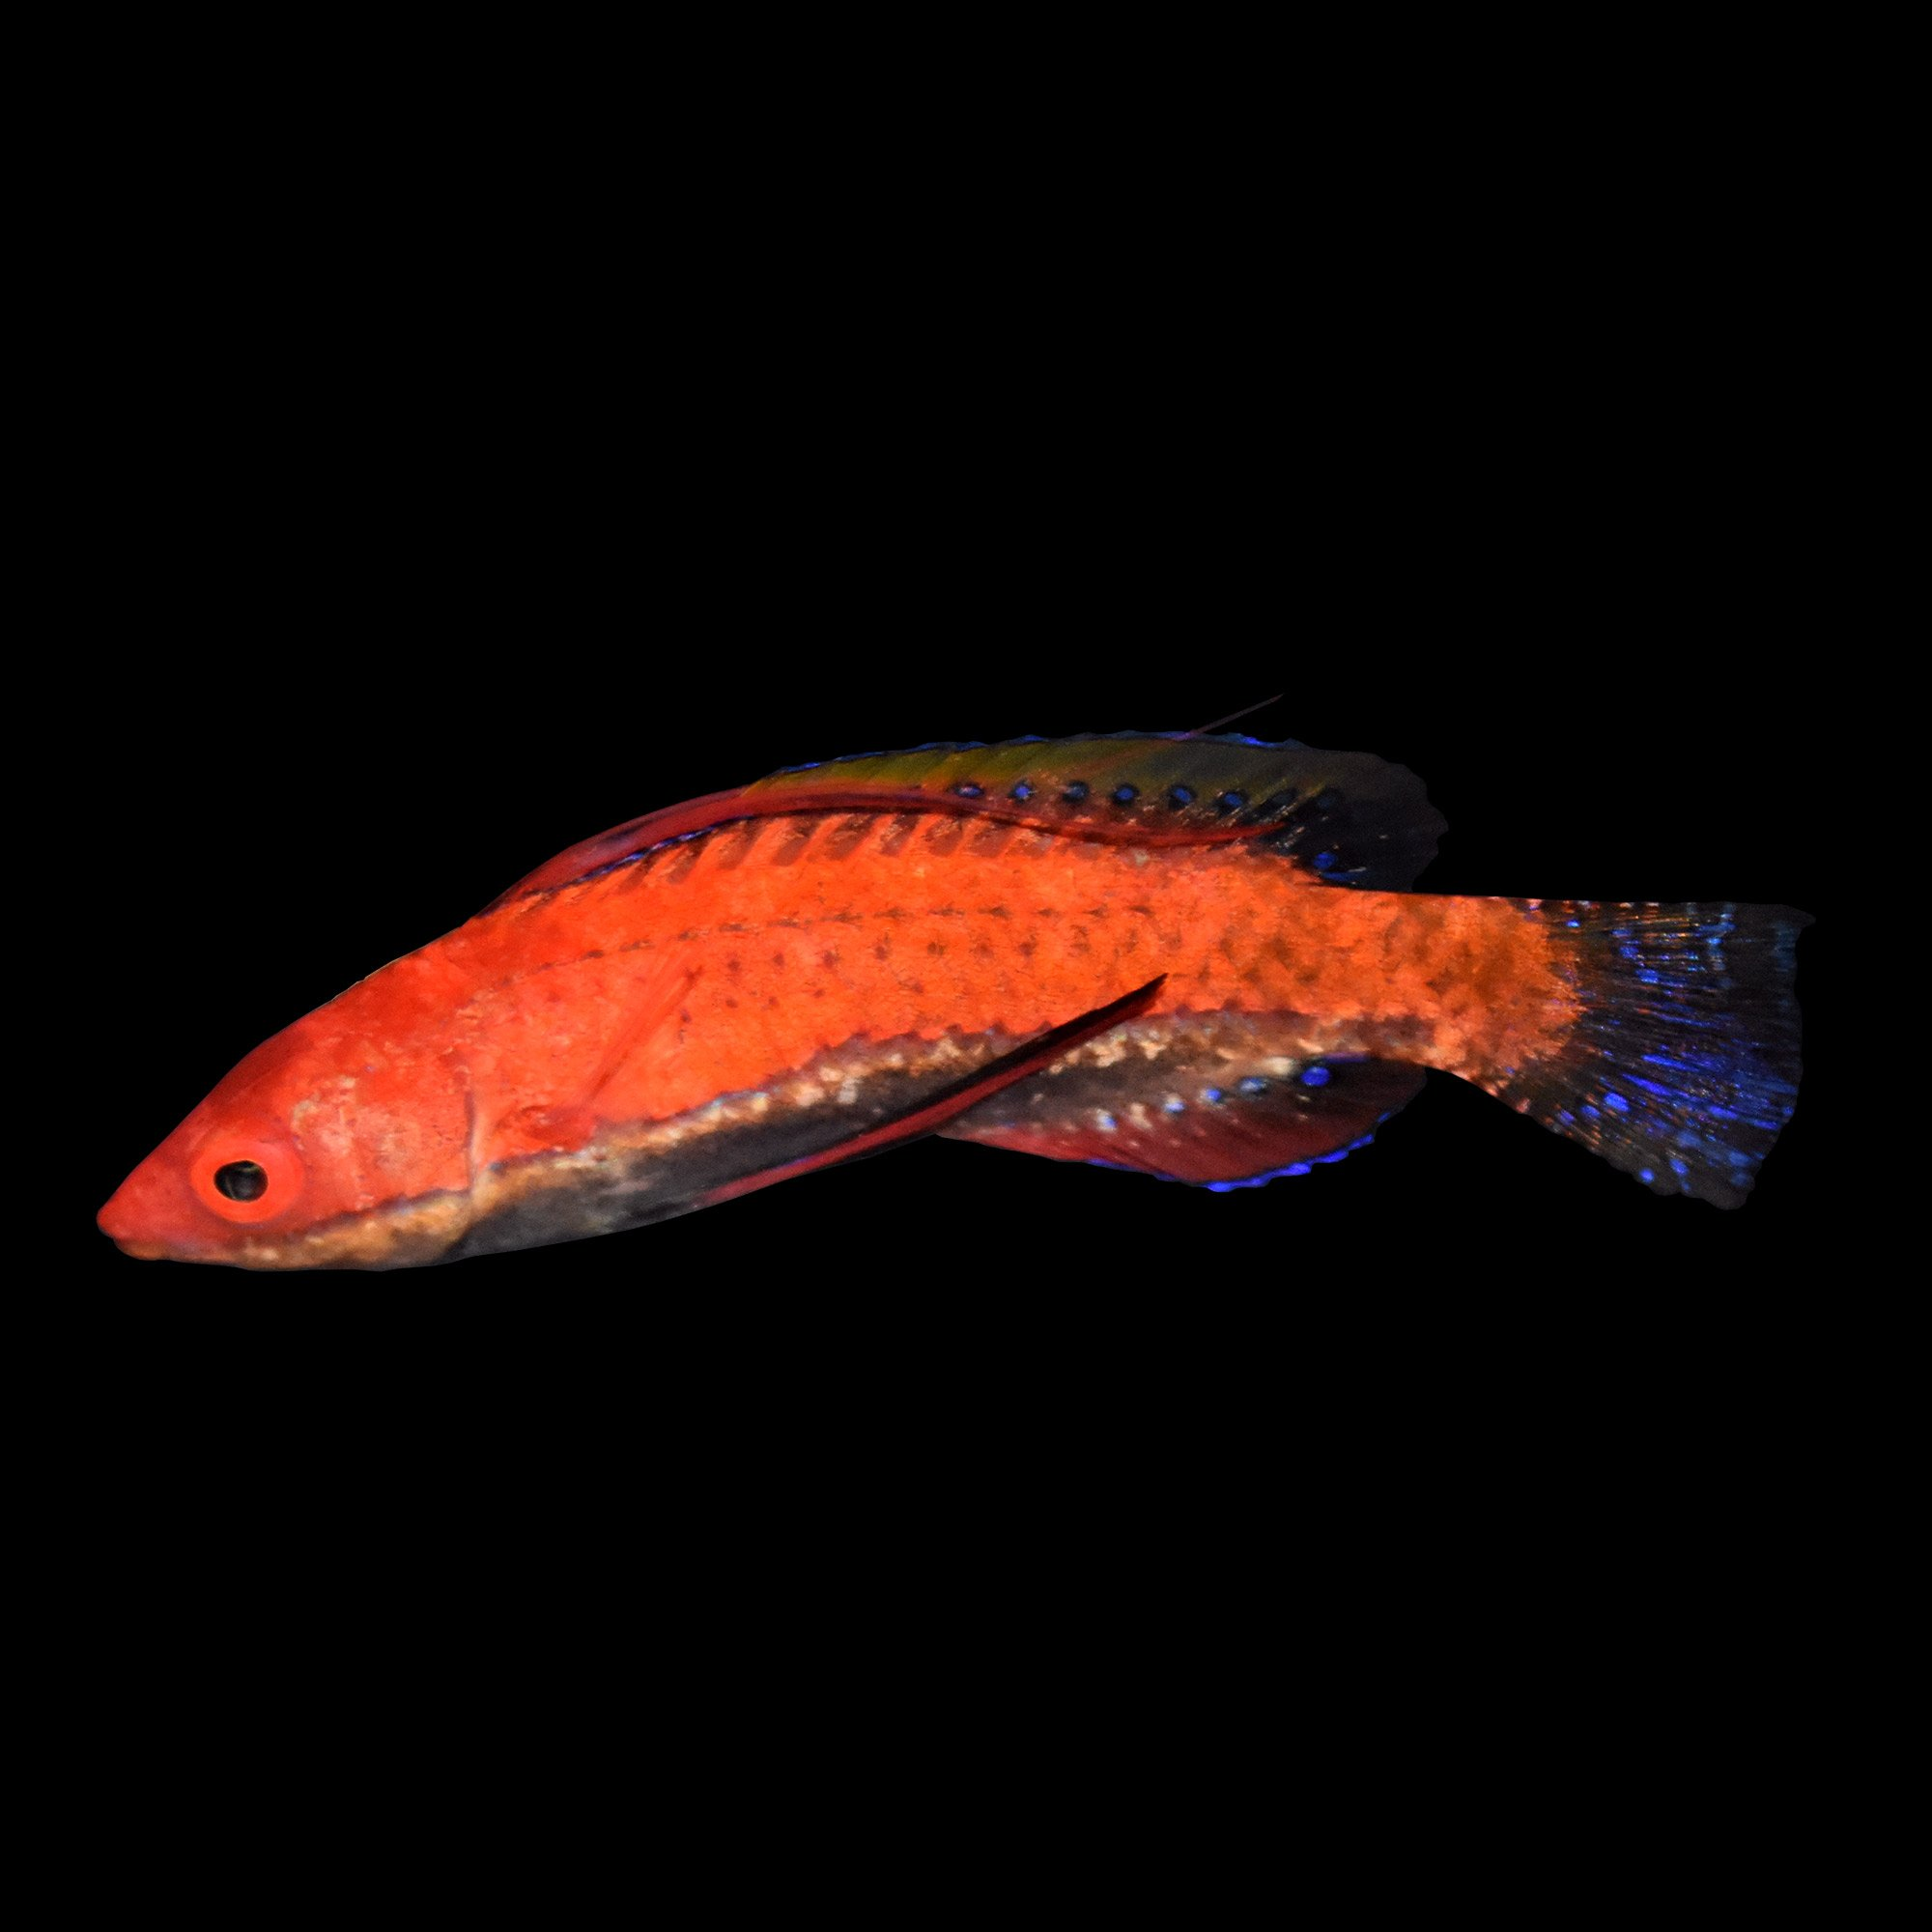 Longfin fairy wrasse petco for Petco live fish